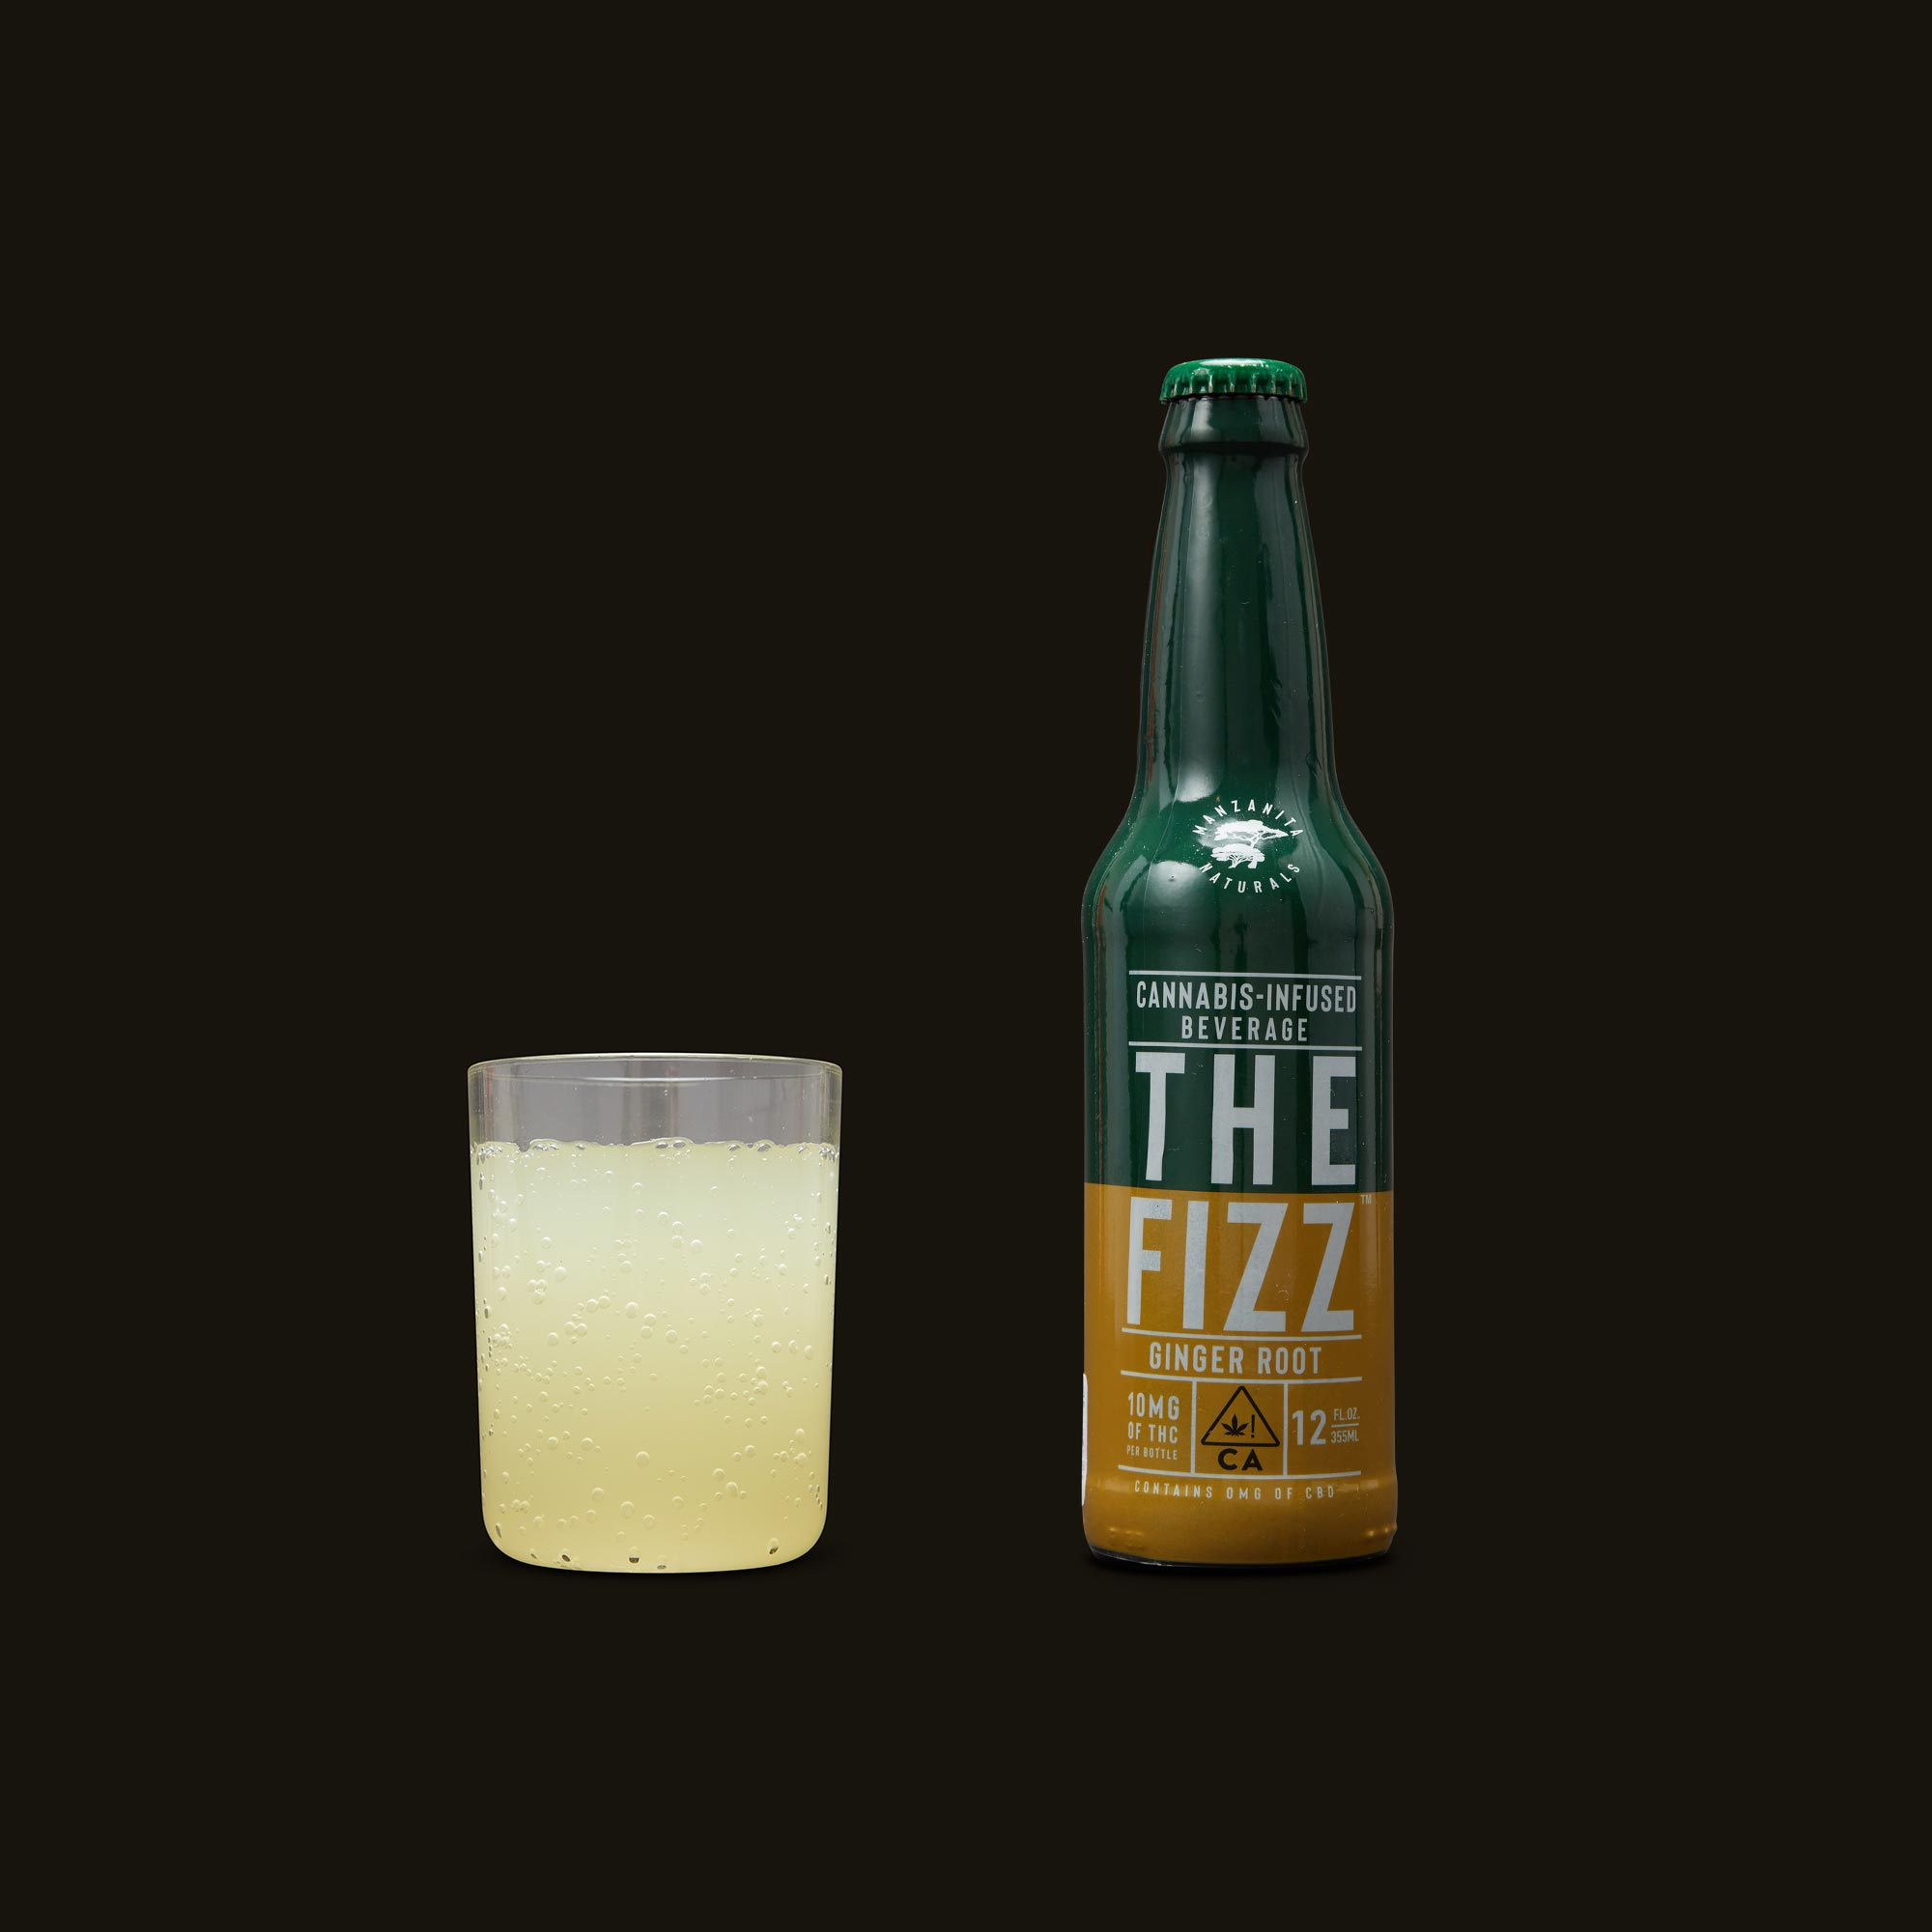 Manzanita Naturals The Fizz Ginger Root Natural Soda